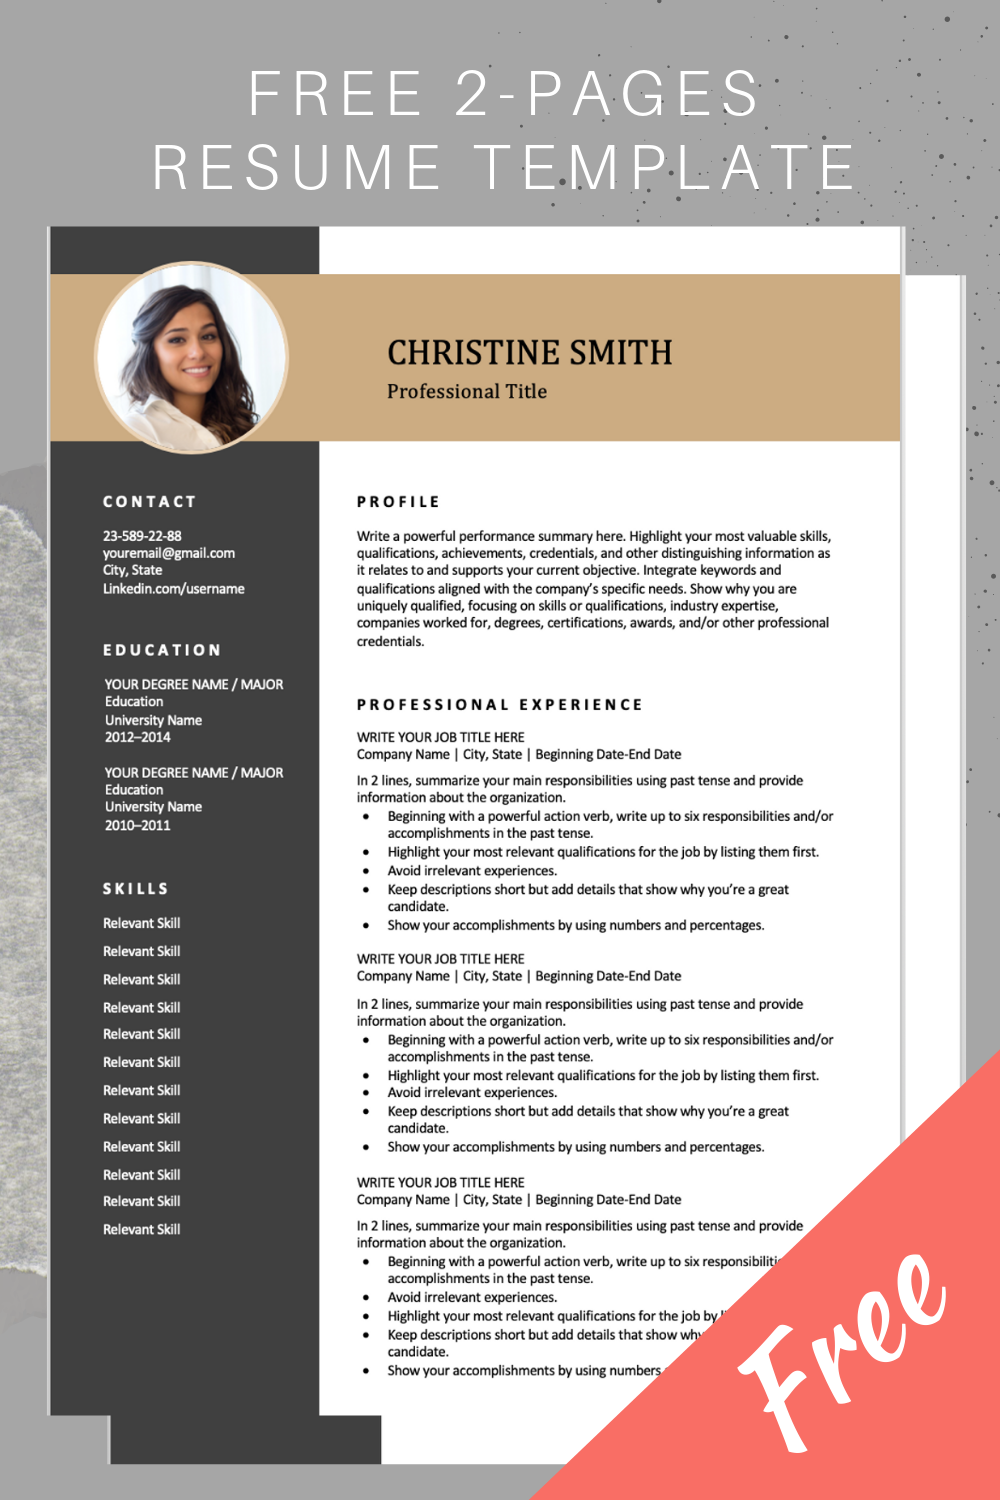 Free Resume Templates Resume template, Downloadable